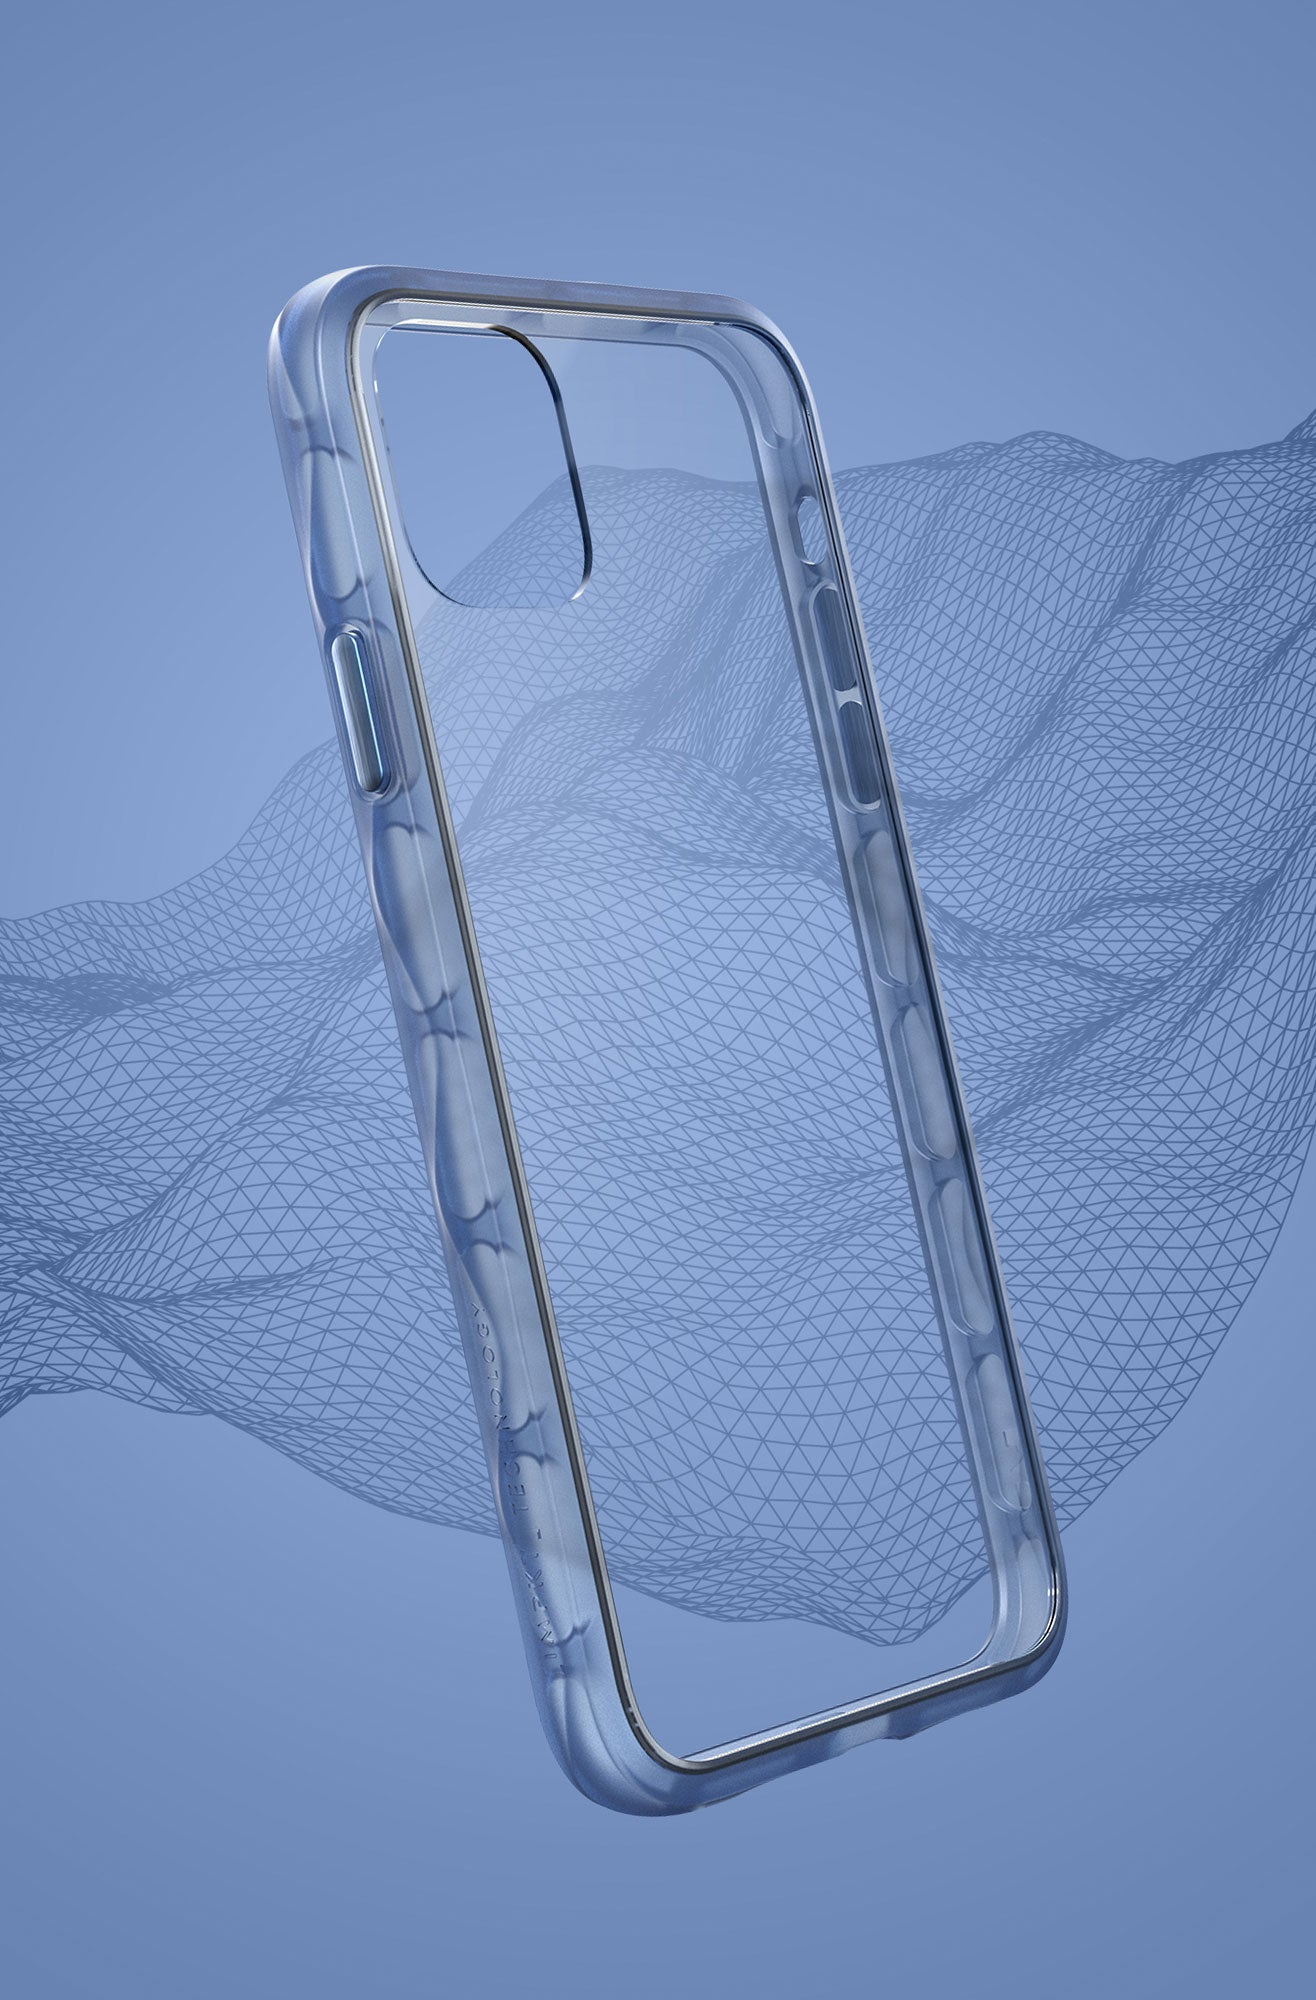 LAUT - CRYSTAL MATTER (IMPKT) - TINTED SERIES case for iPhone 12 series - BUILT FOR PURPOSE